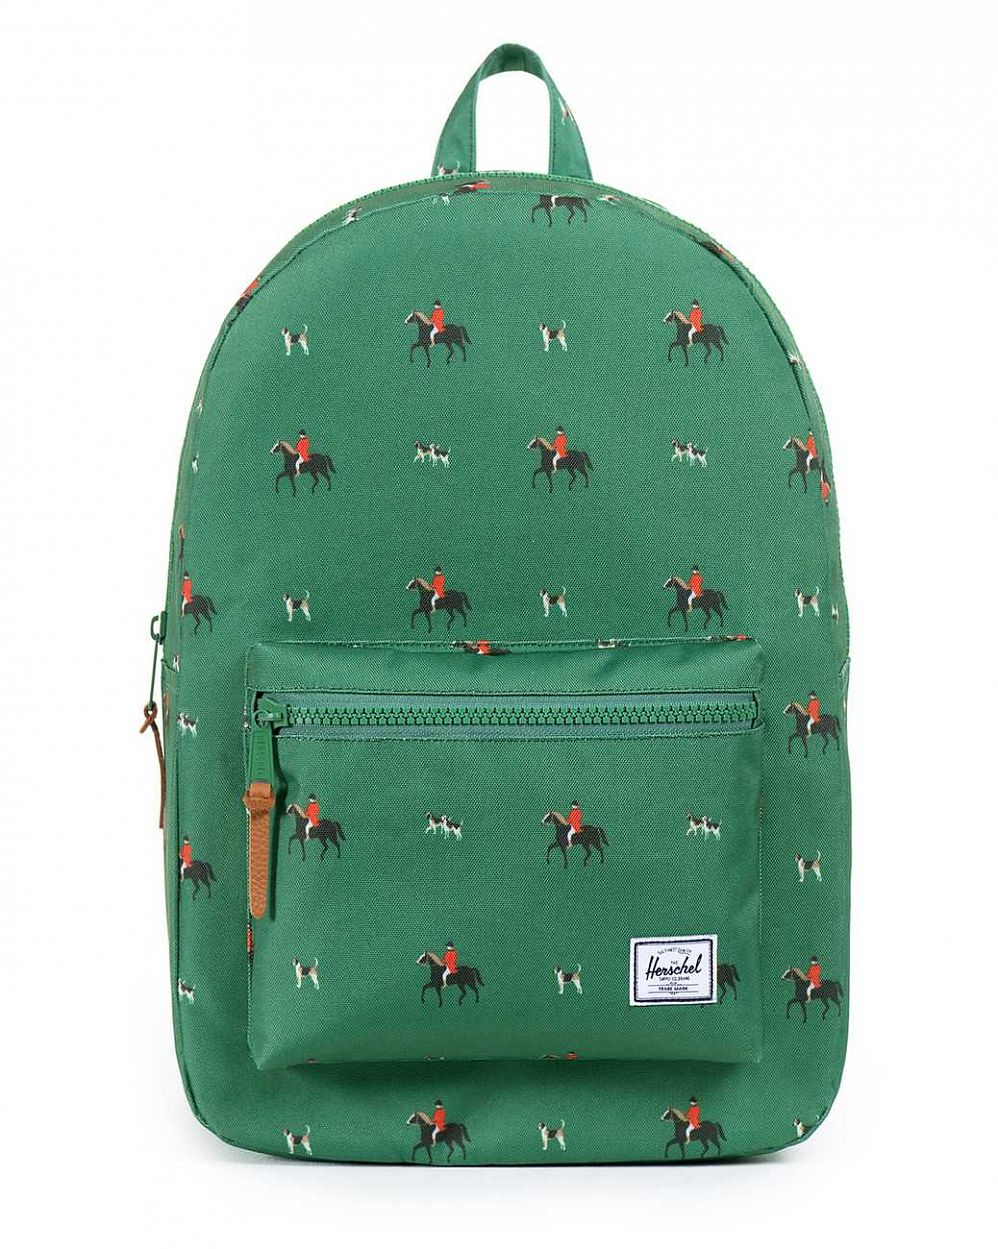 купить Рюкзак Herschel Settlement Sunday Plastic Zipper в Москве